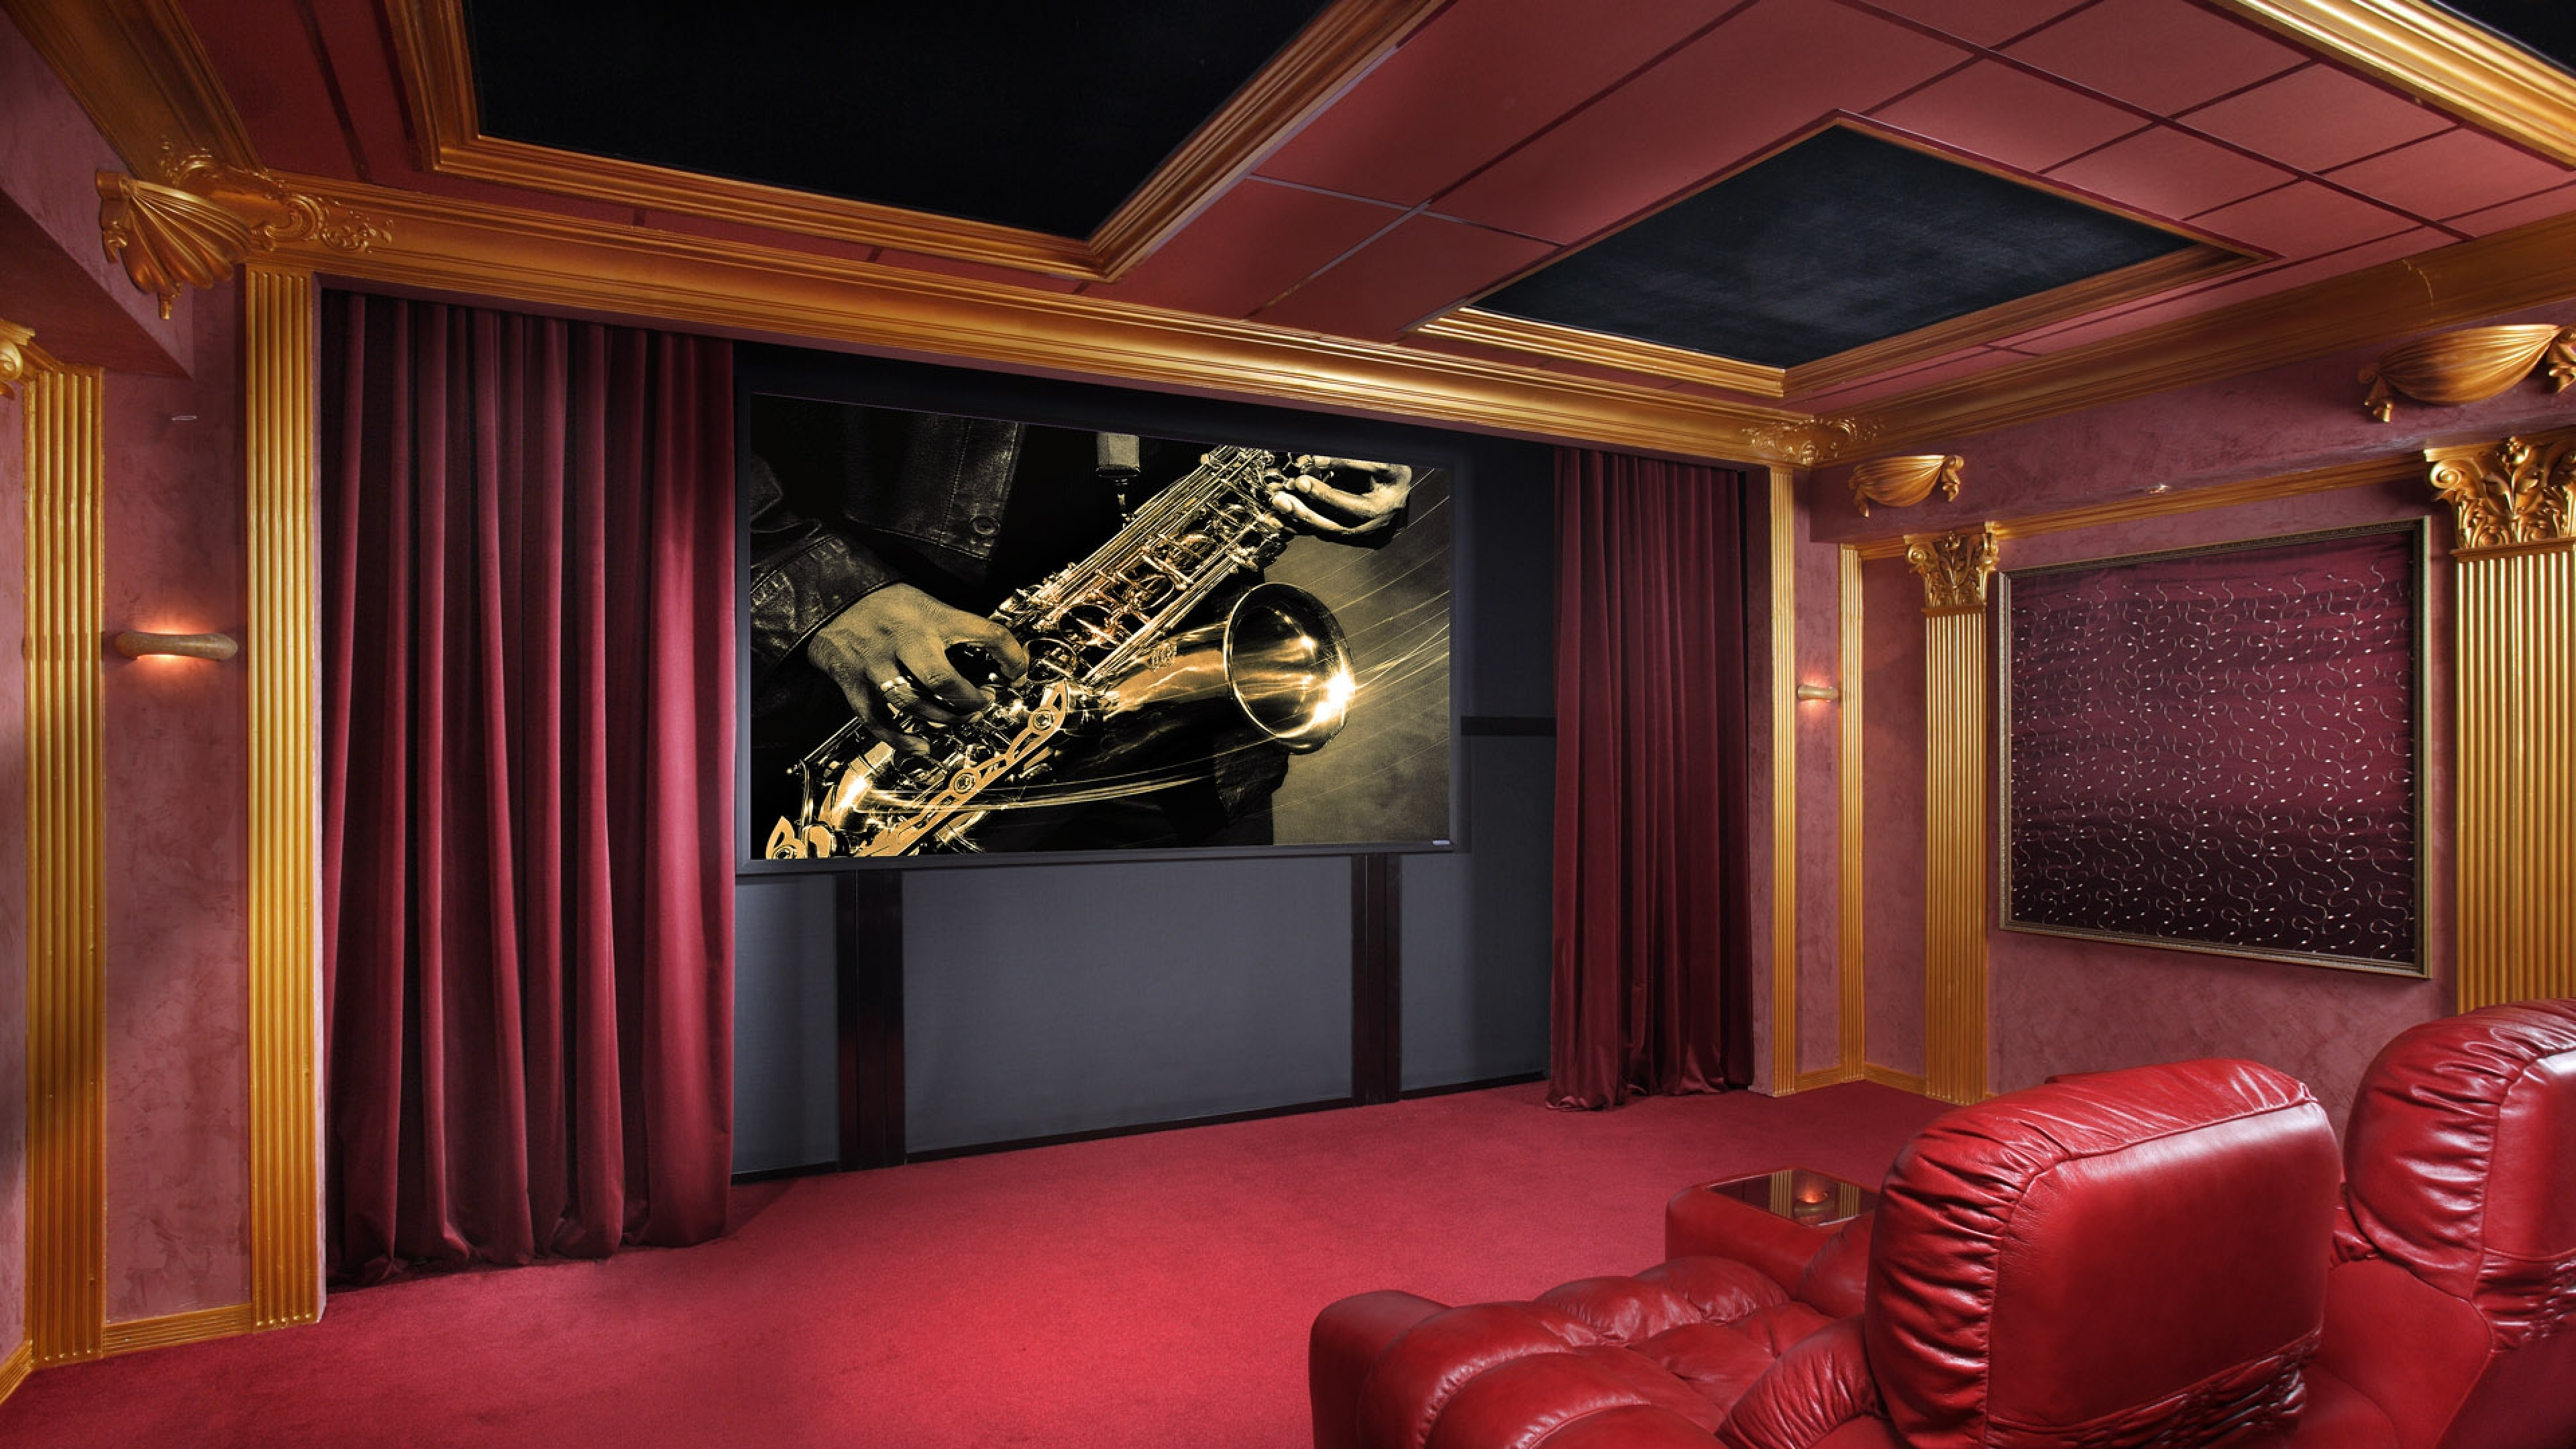 46 Theater Room Wallpaper on WallpaperSafari